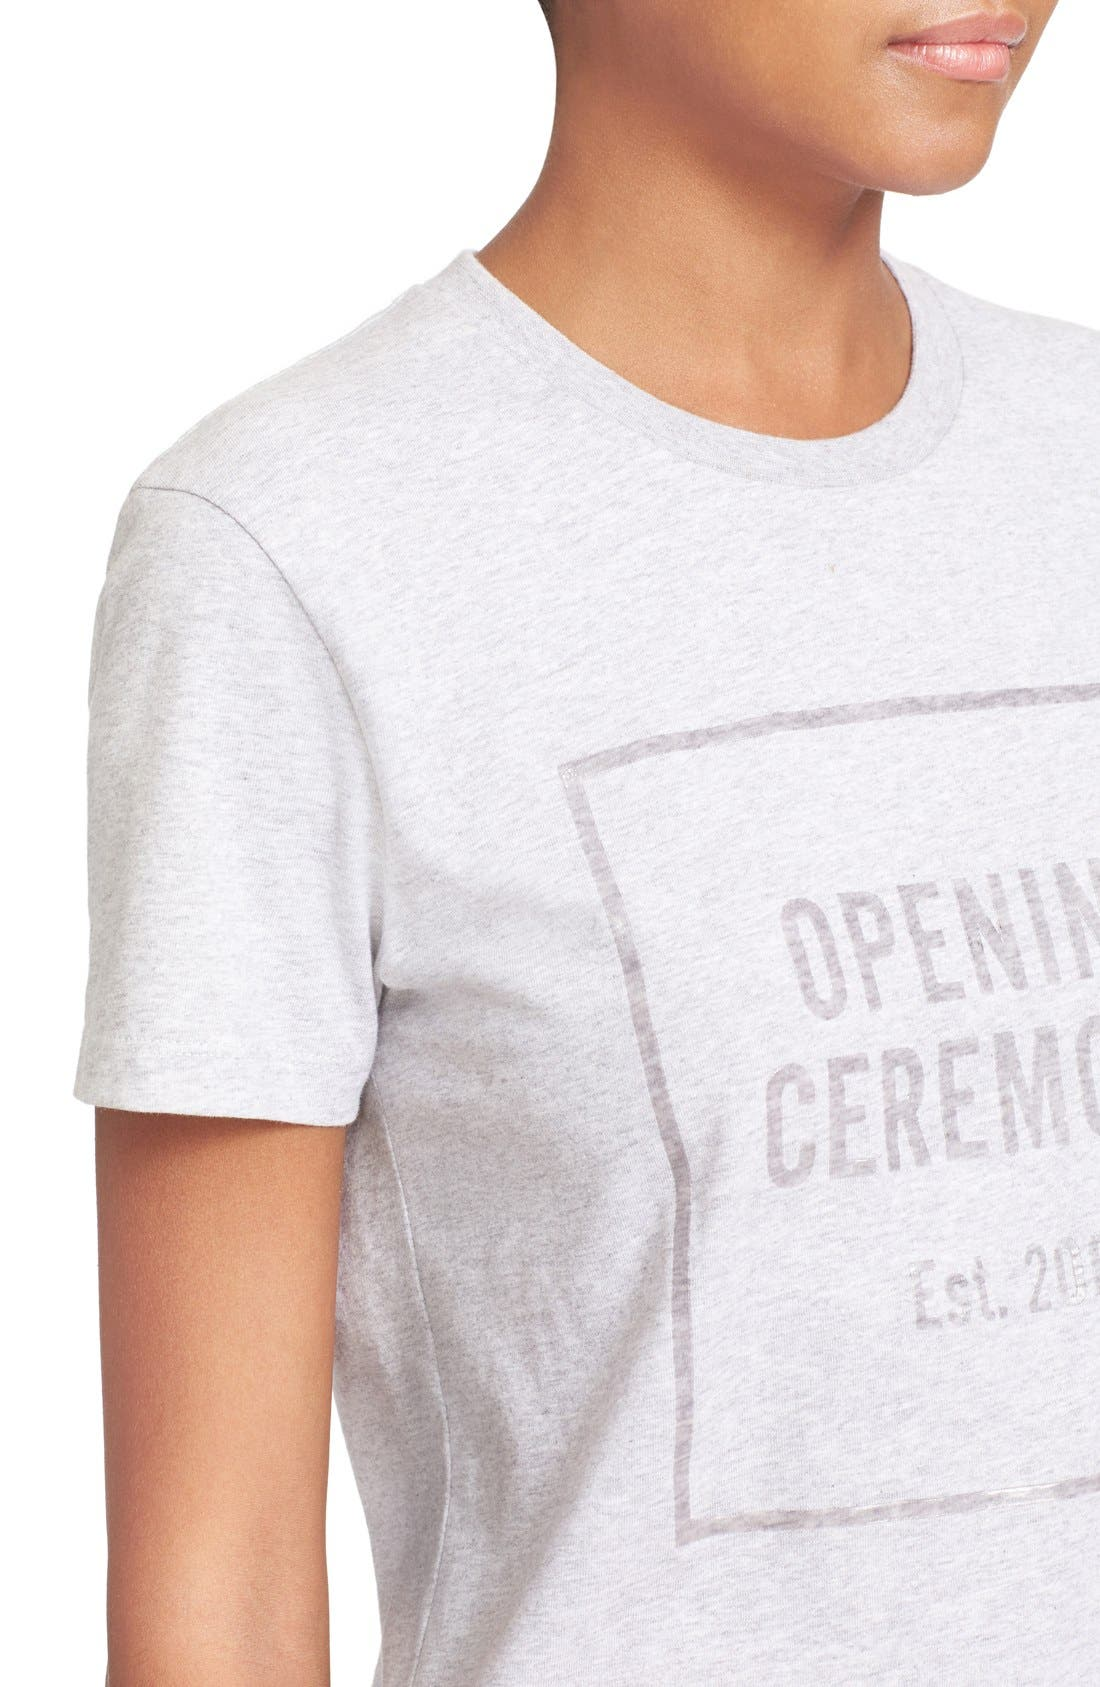 'OC Box' Logo Tee,                             Alternate thumbnail 8, color,                             034